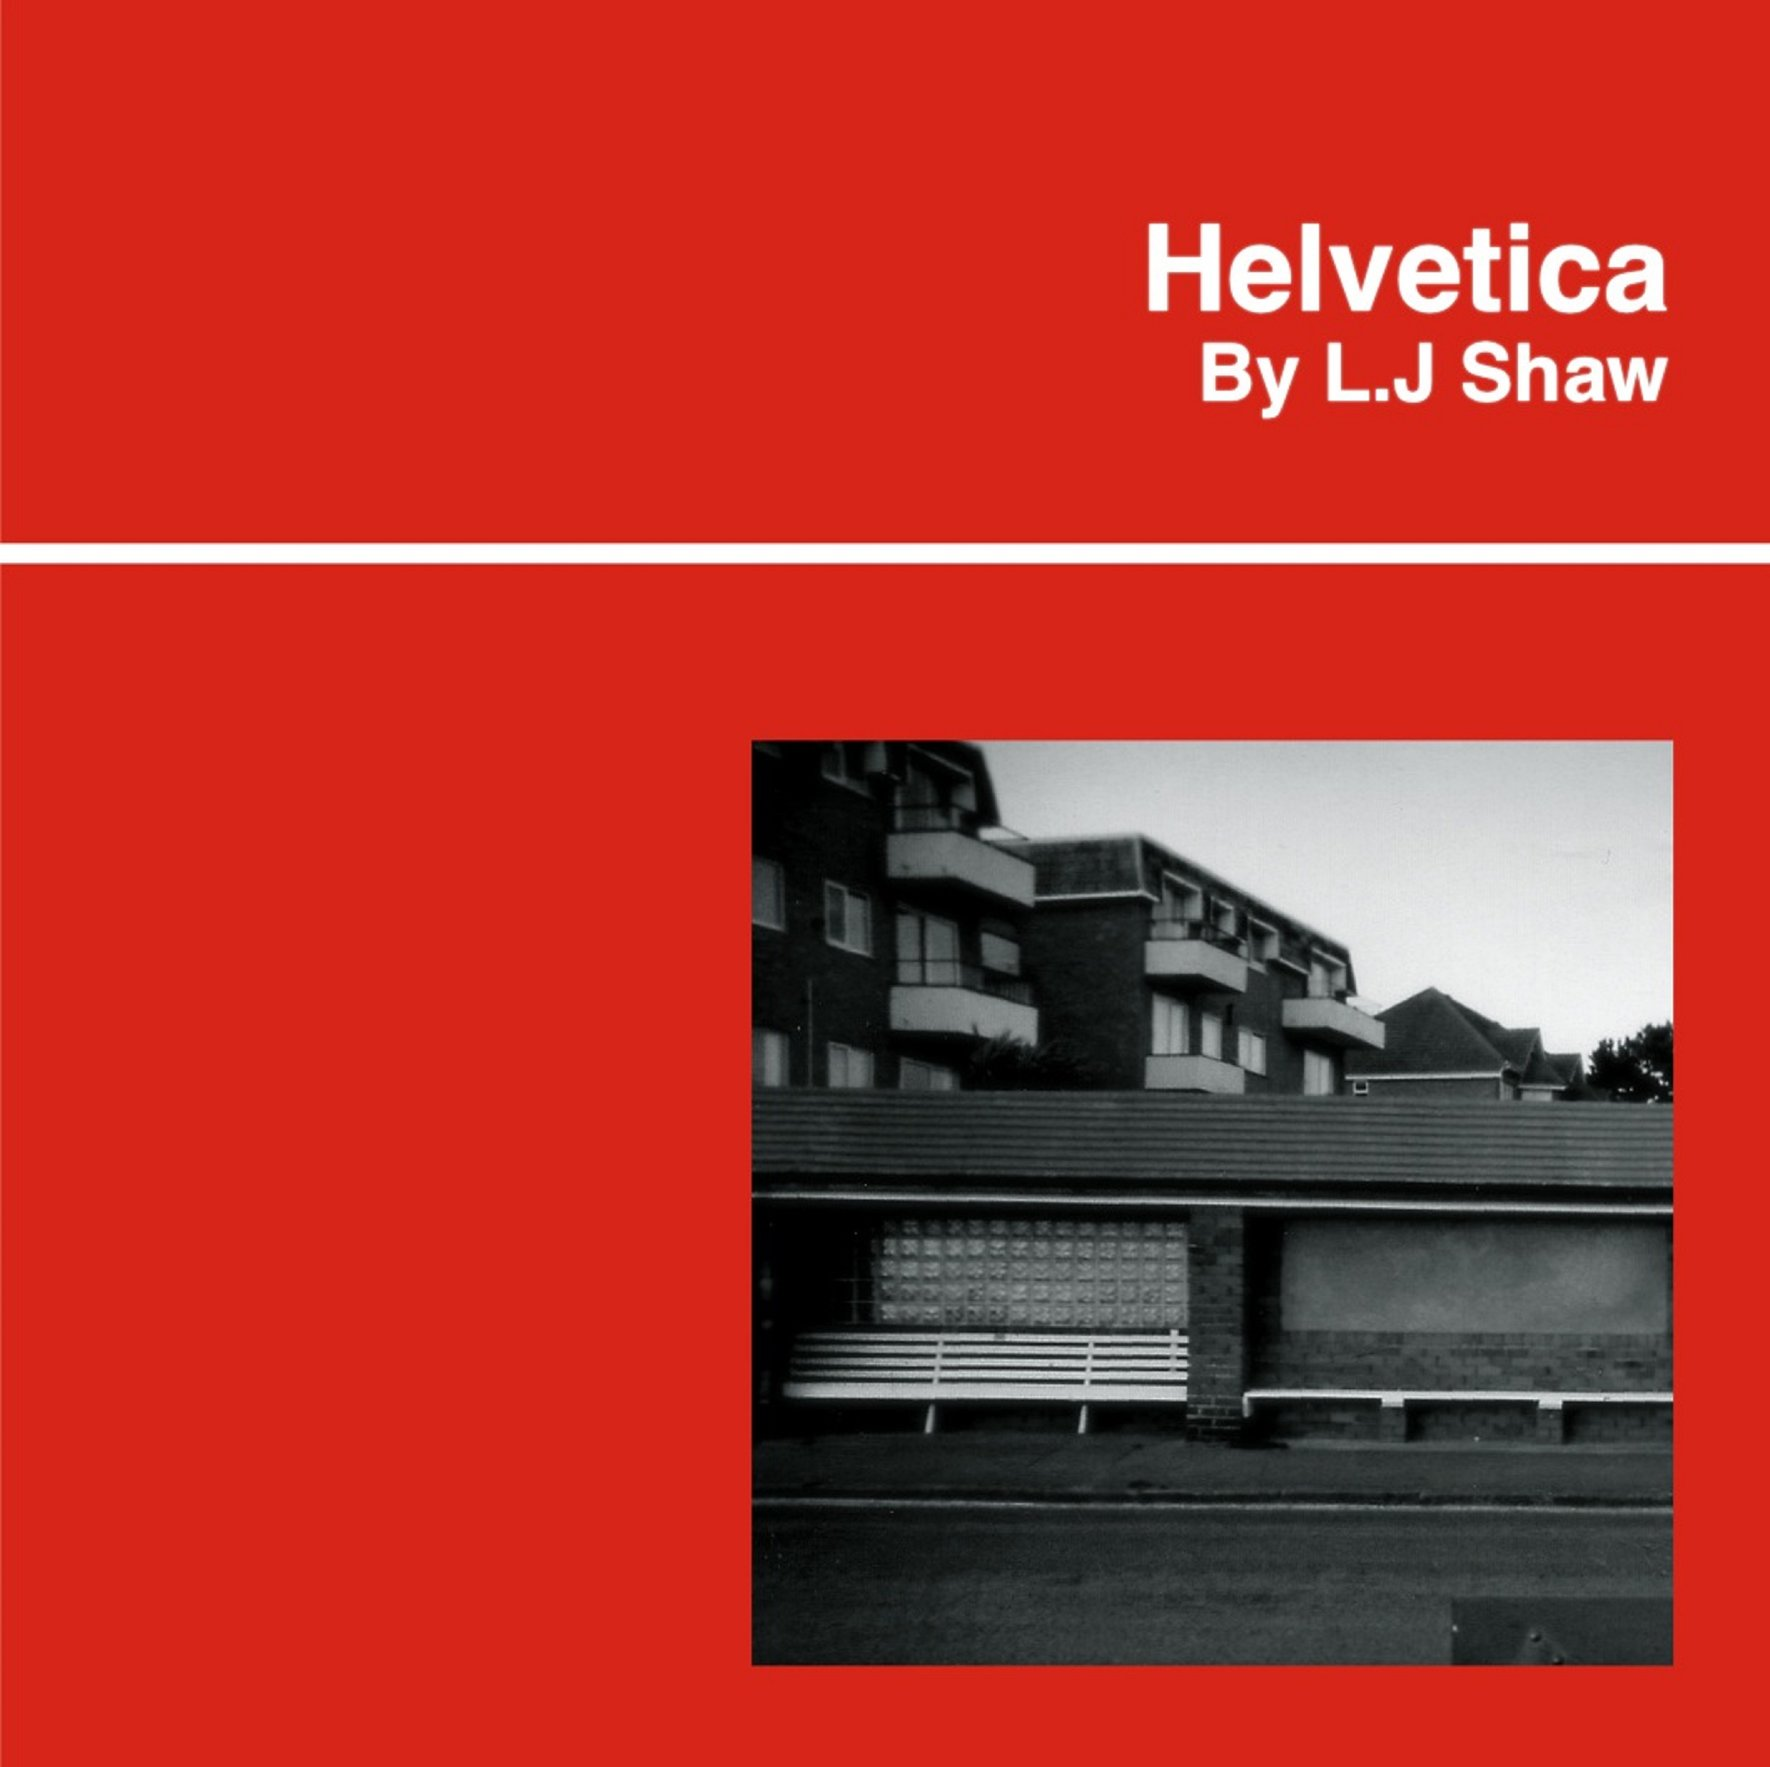 rsz_helvetica_cover